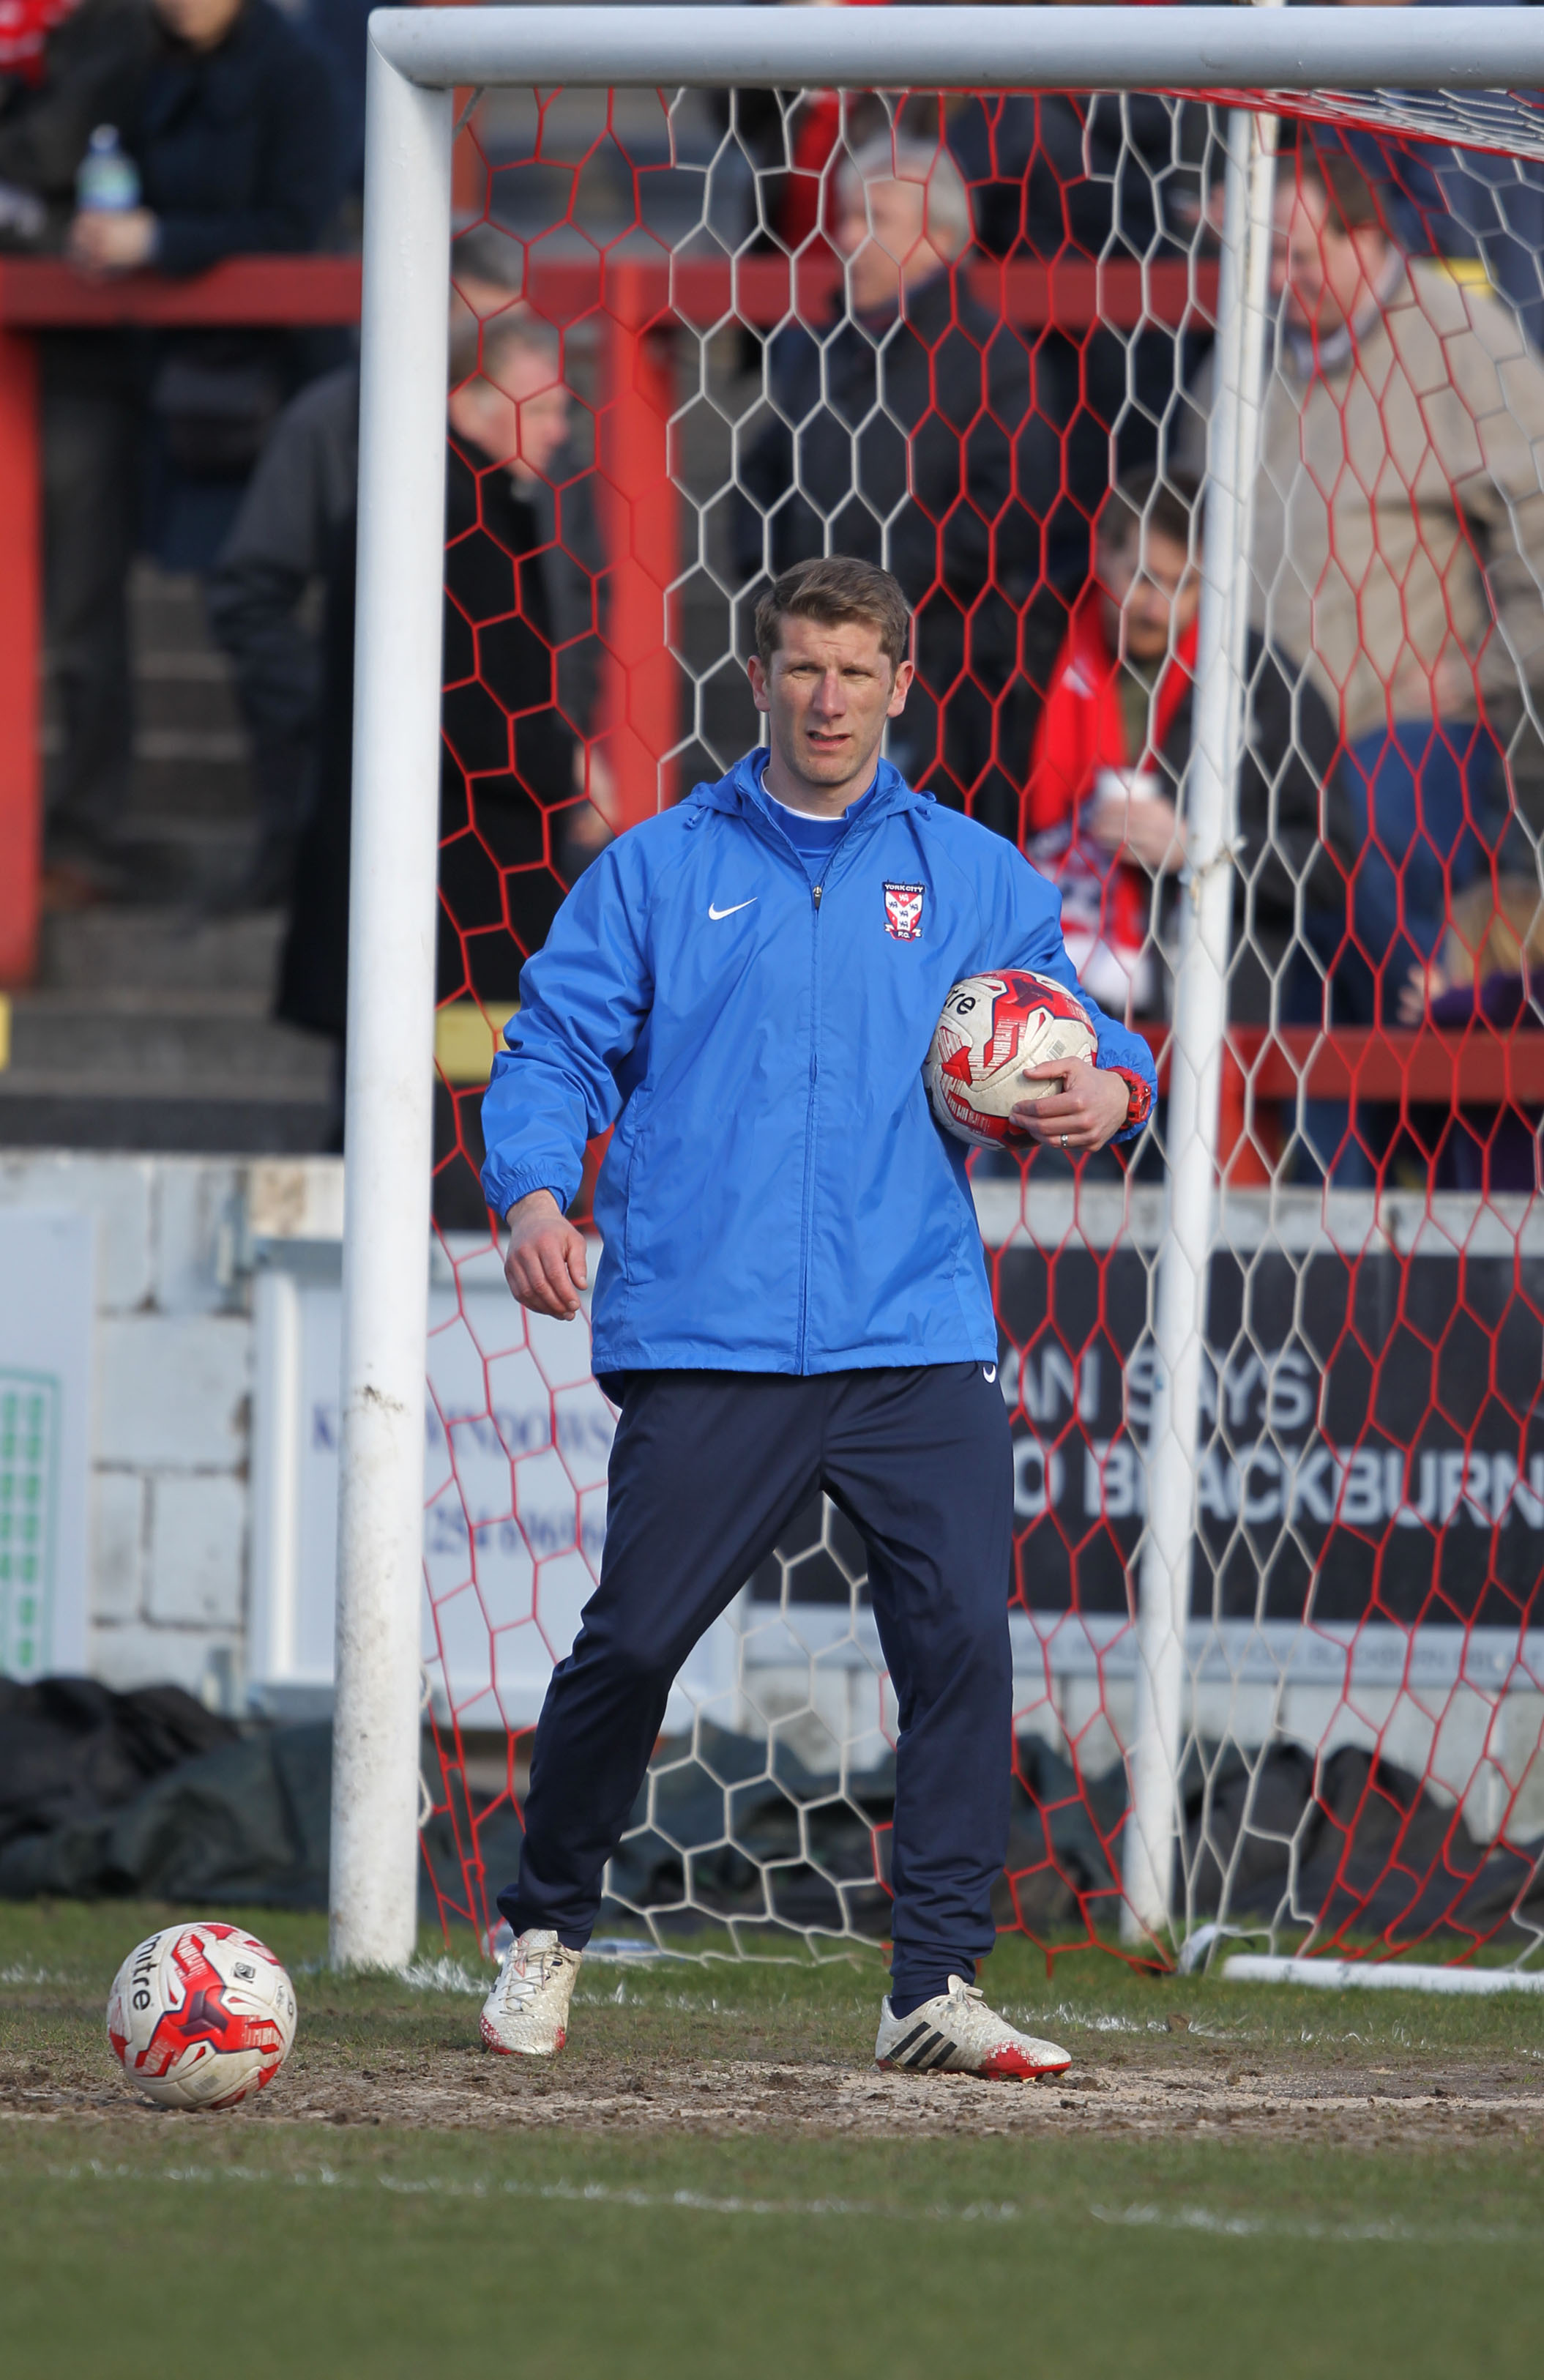 ANOTHER RETURN?: Richard Cresswell, the former York City fan favourite and first-team coach, who last left the Minstermen in December 2015 under the much-maligned managerial reign of Jackie McNamara, has emerged as favourite to take over as City boss foll